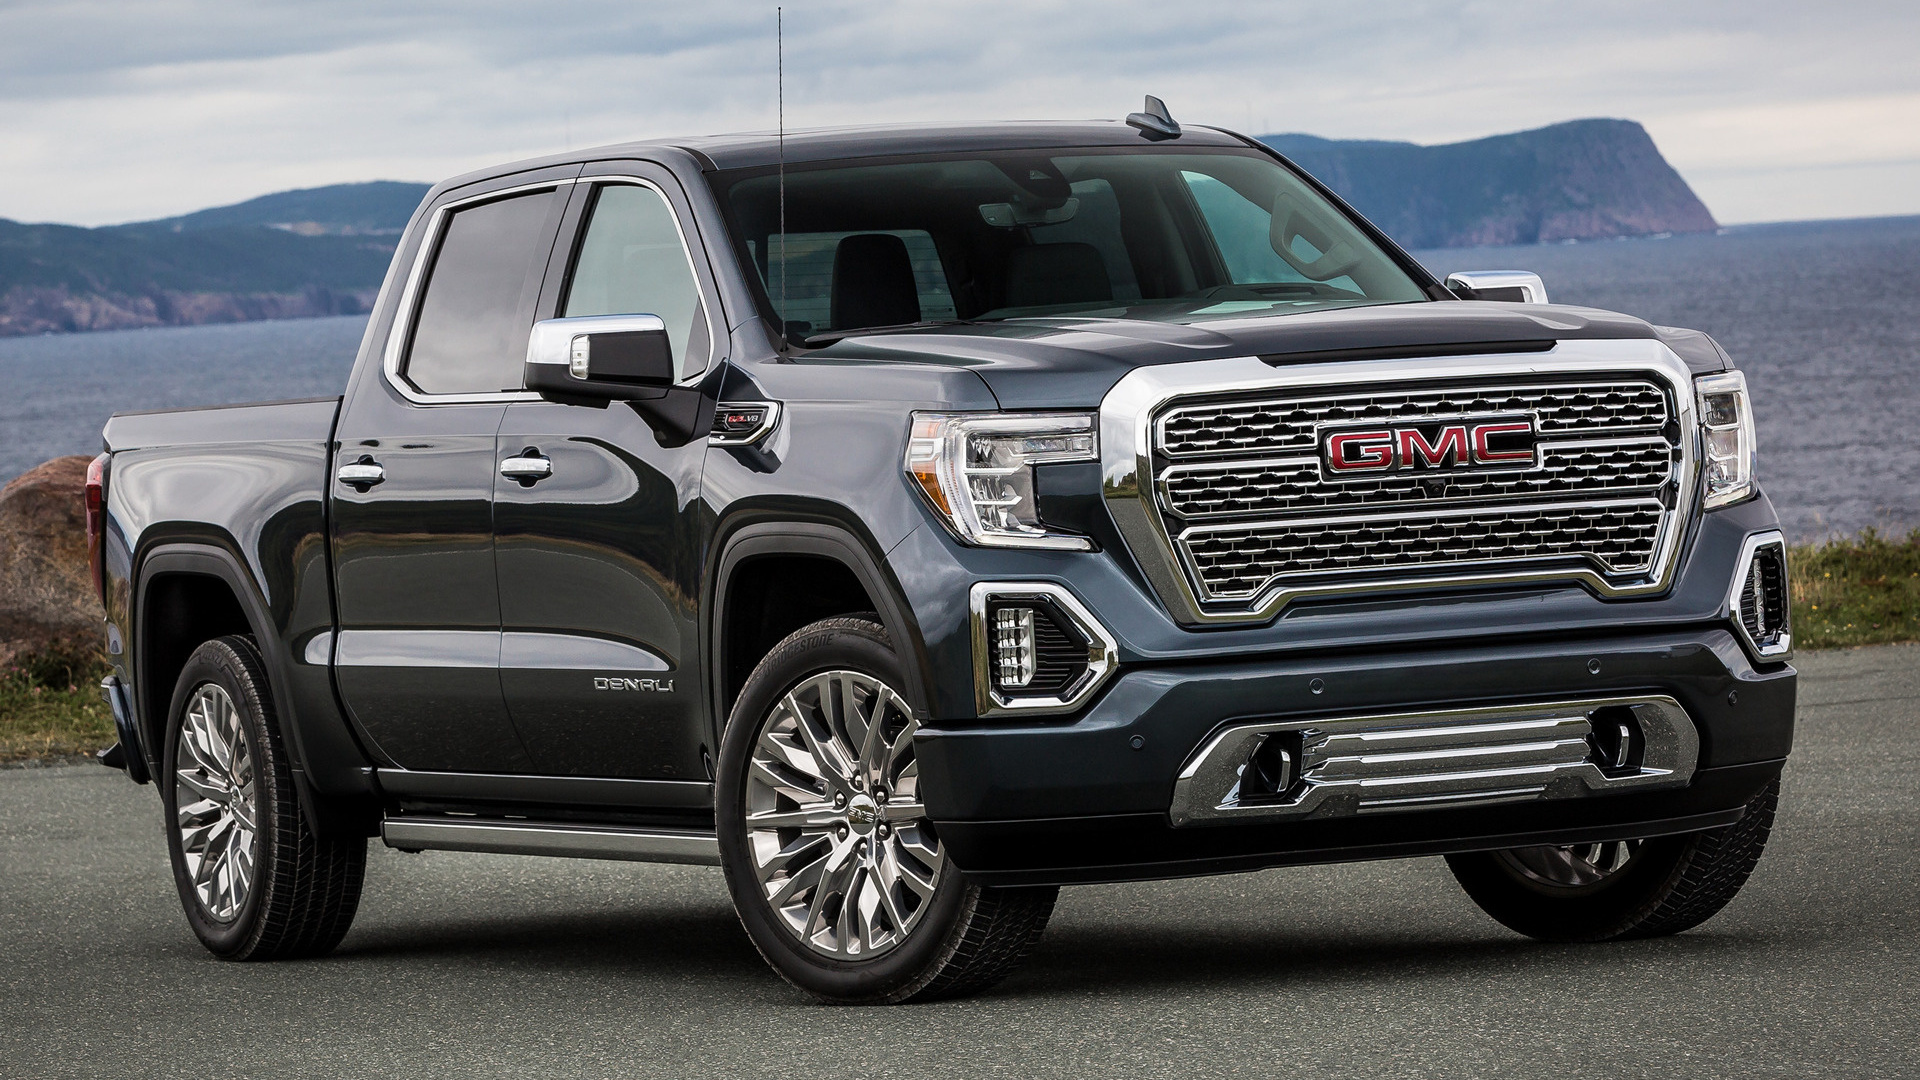 2019 Gmc Sierra Denali Crew Cab Wallpapers And Hd Images